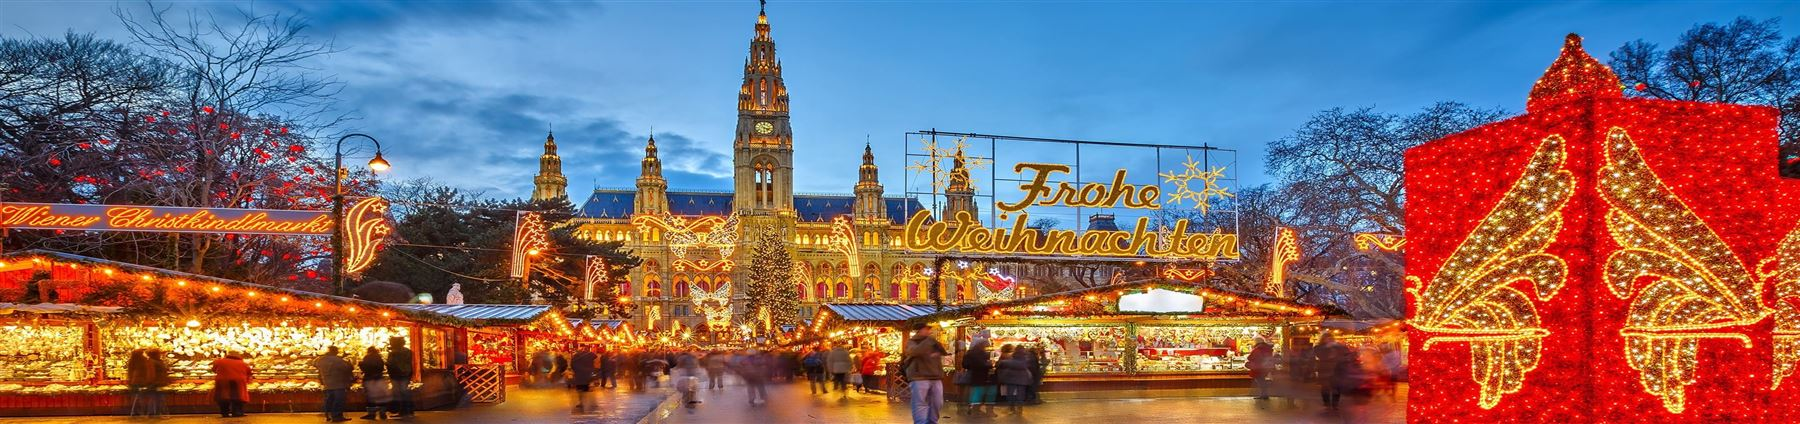 Christmas On The Danube 2020 Christmas Markets on the Danube: Vilshofen 2020